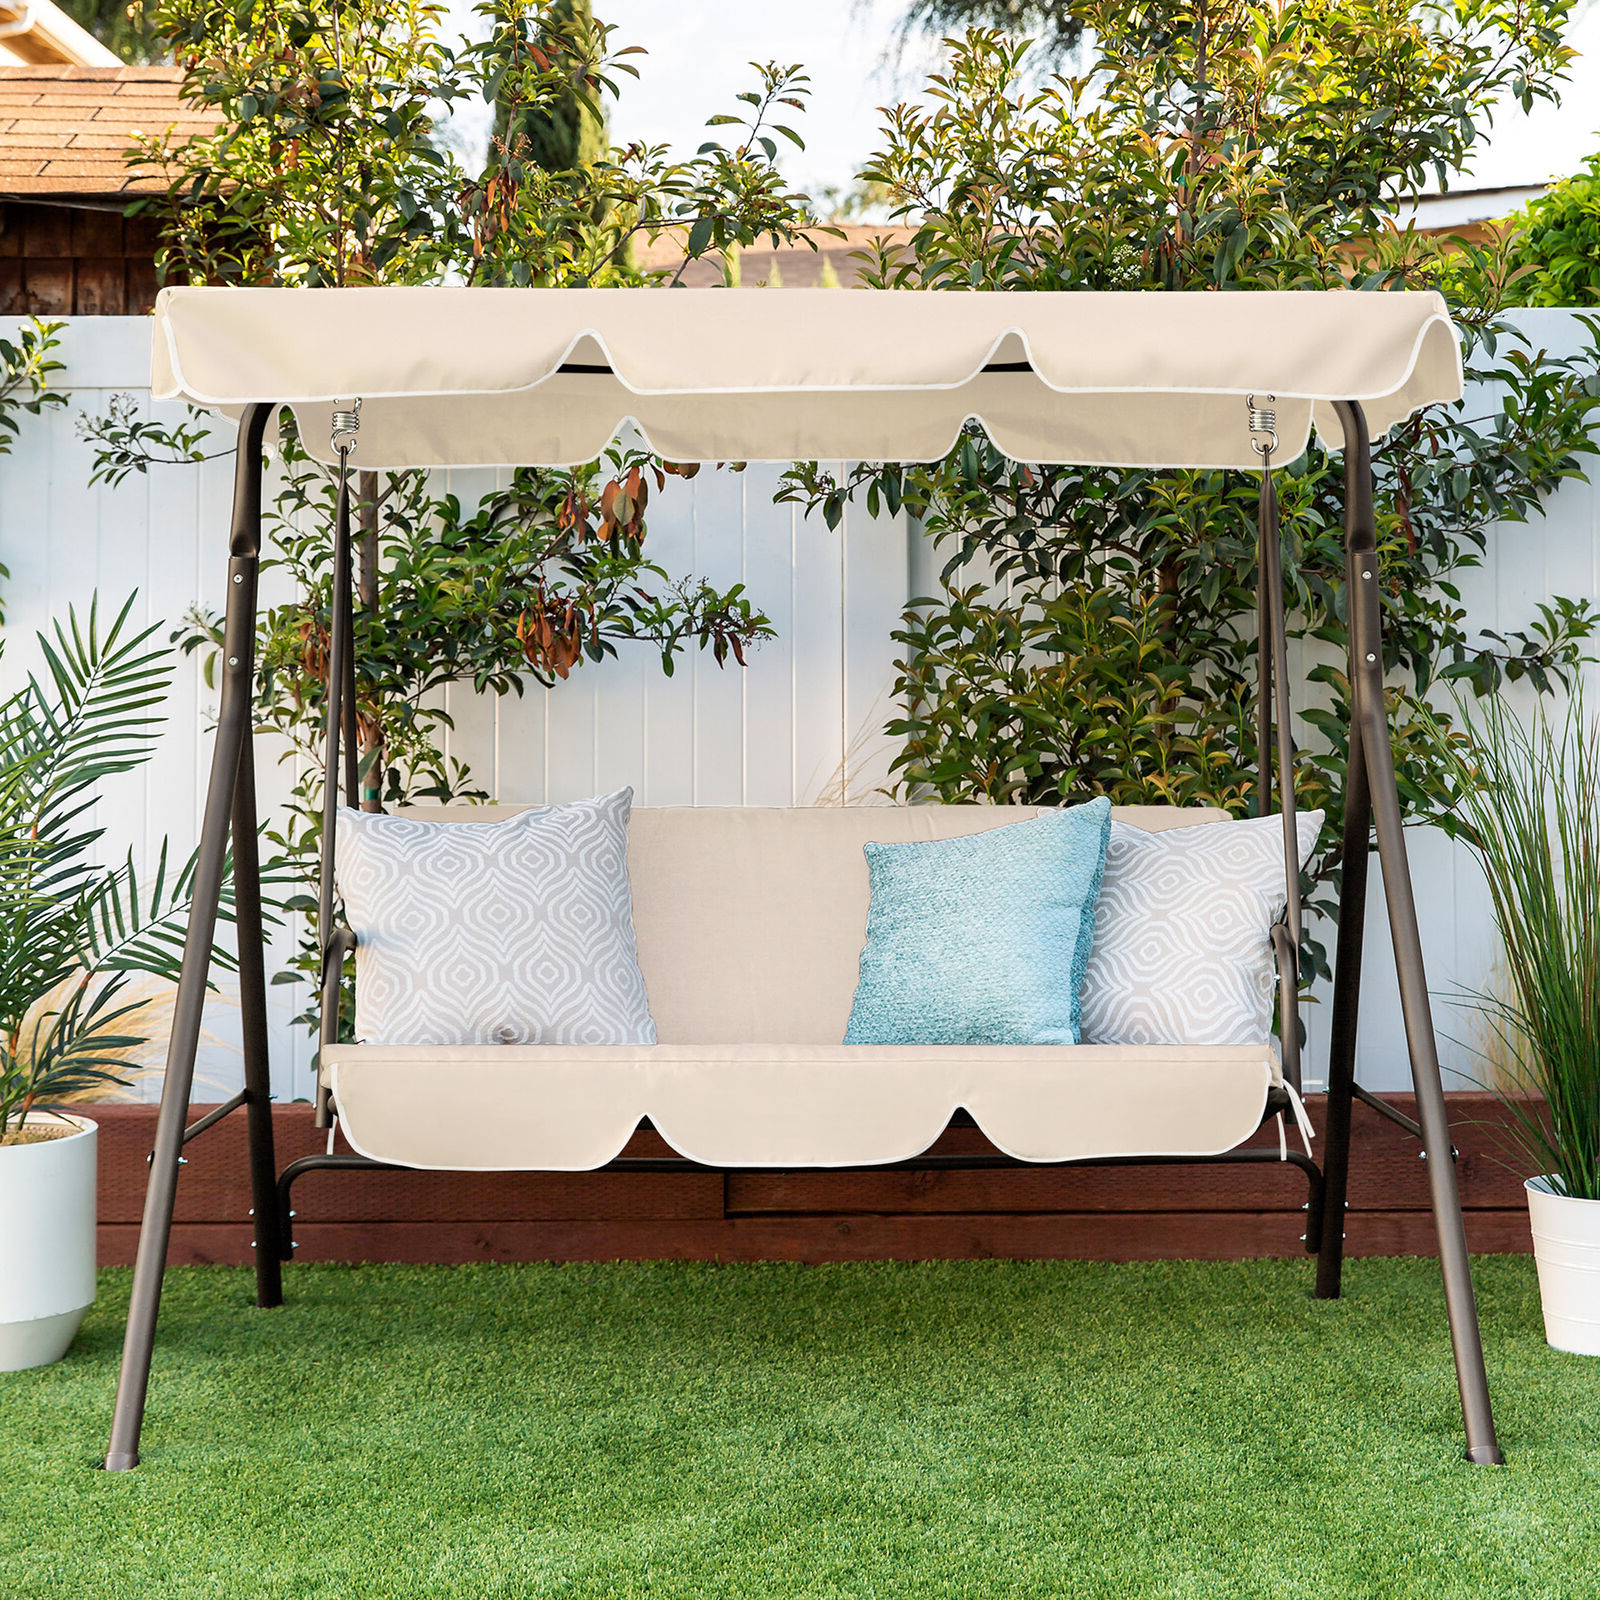 Well Known Best Choice Products Outdoor 2 Person Patio Canopy Swing – Burgundy Intended For 2 Person Outdoor Convertible Canopy Swing Gliders With Removable Cushions Beige (View 4 of 30)